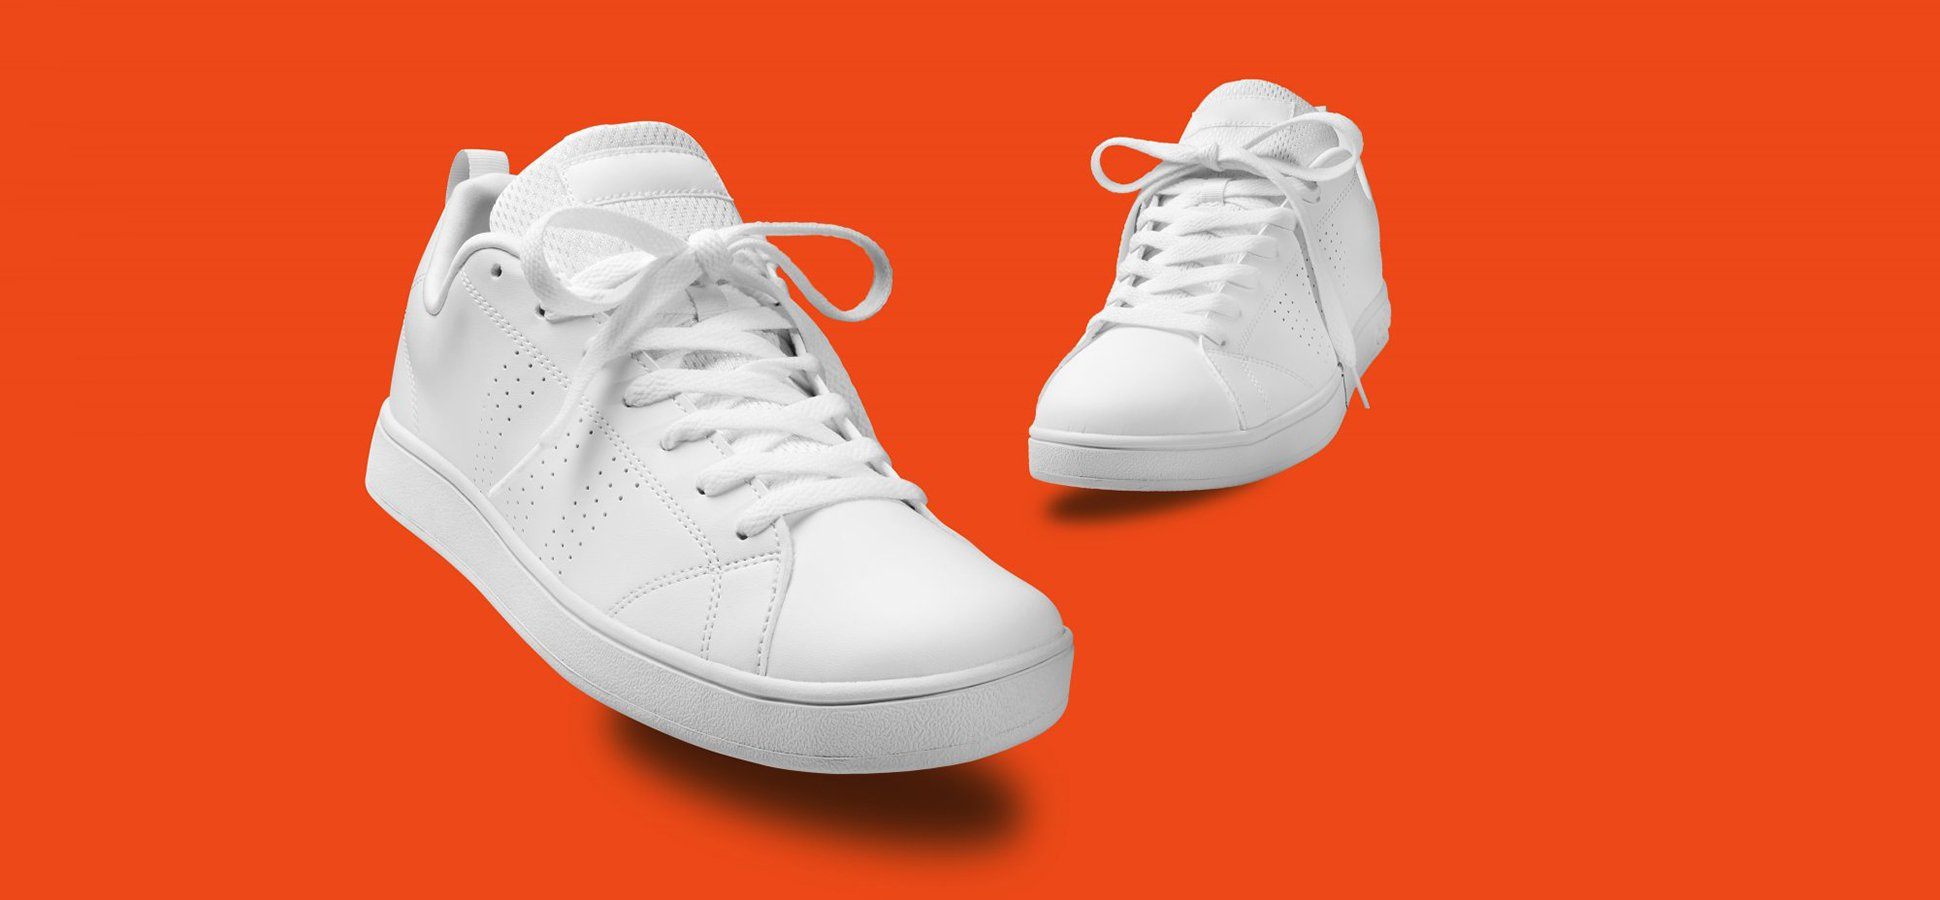 37949c66d3c6c How to Wear Office Appropriate Sneakers and Still Look Professional |  Inc.com